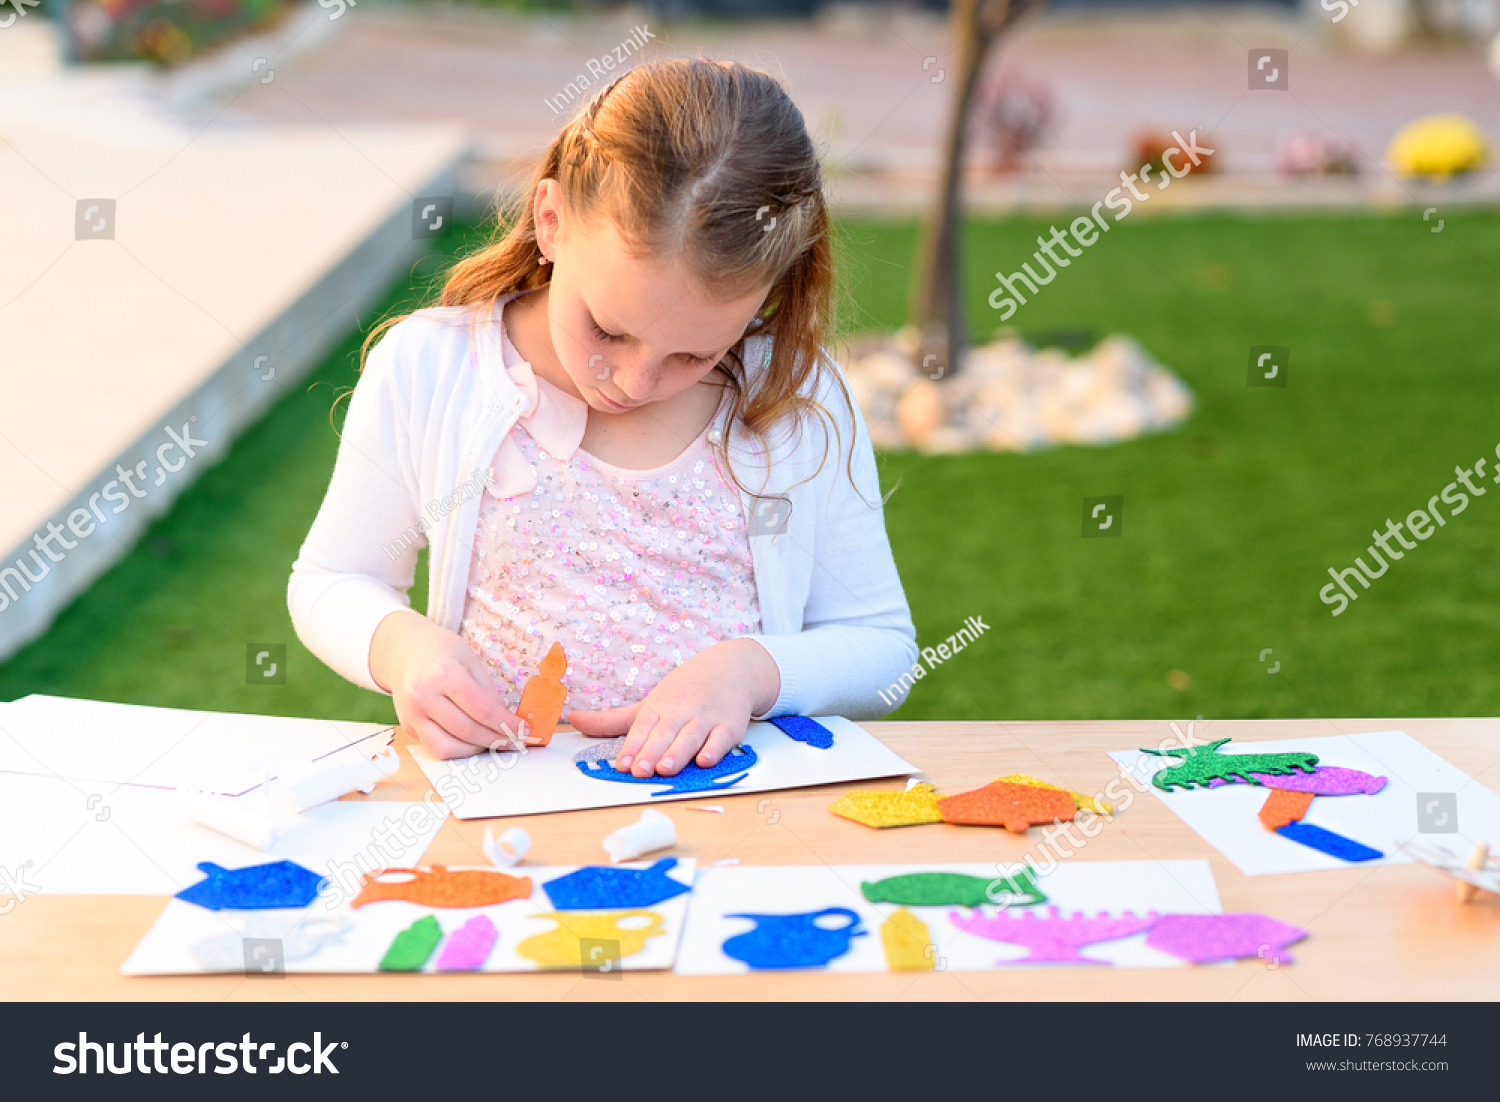 Little Girl Create Greeting Card Image Stock Photo Edit Now